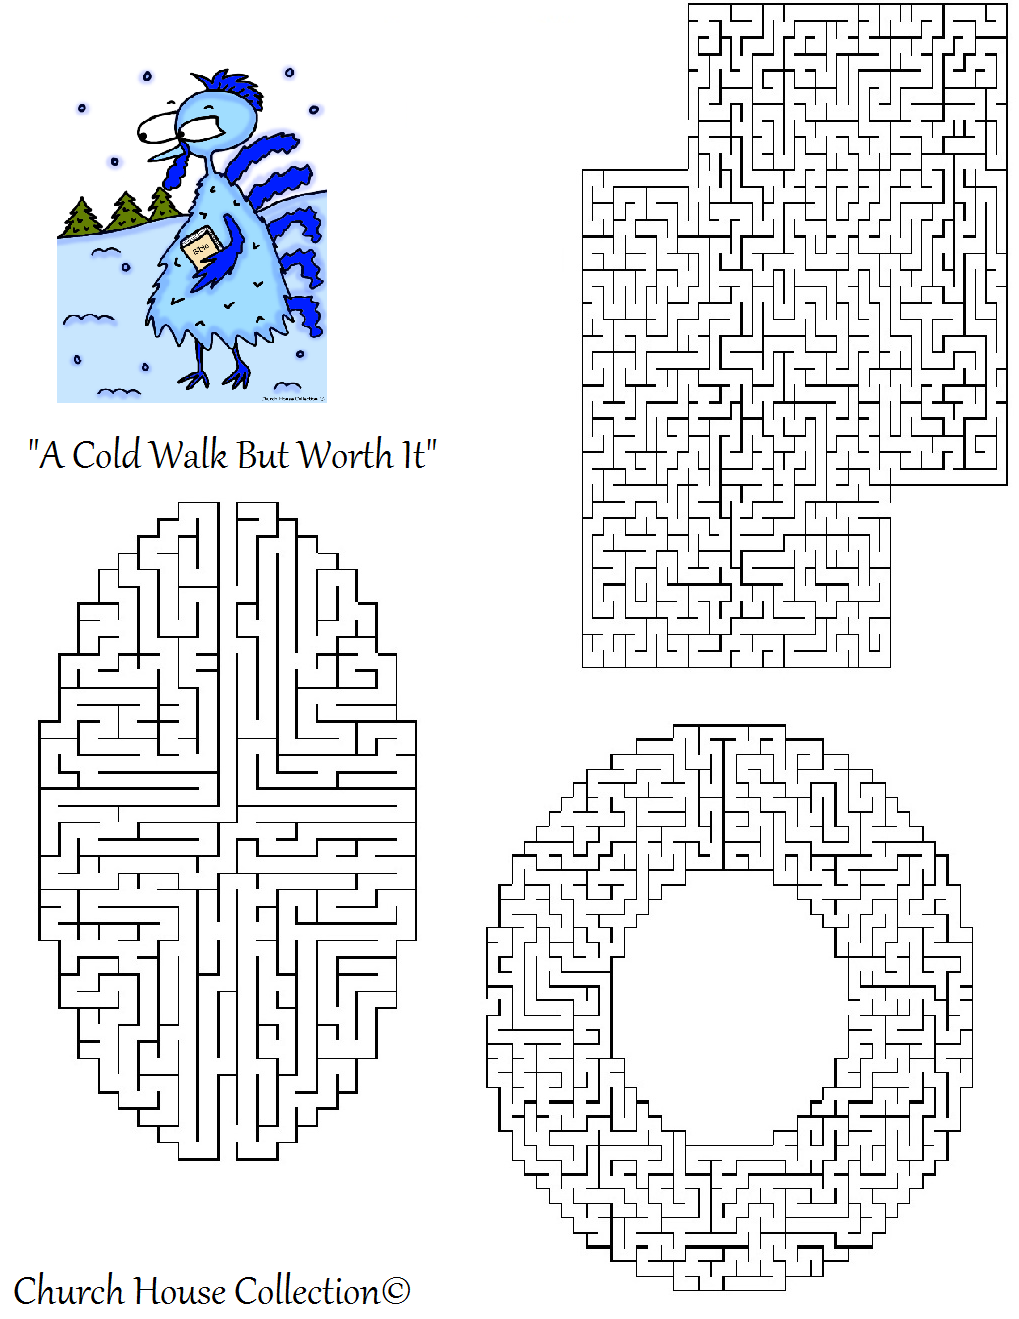 Religious Thanksgiving Maze Images - Reverse Search